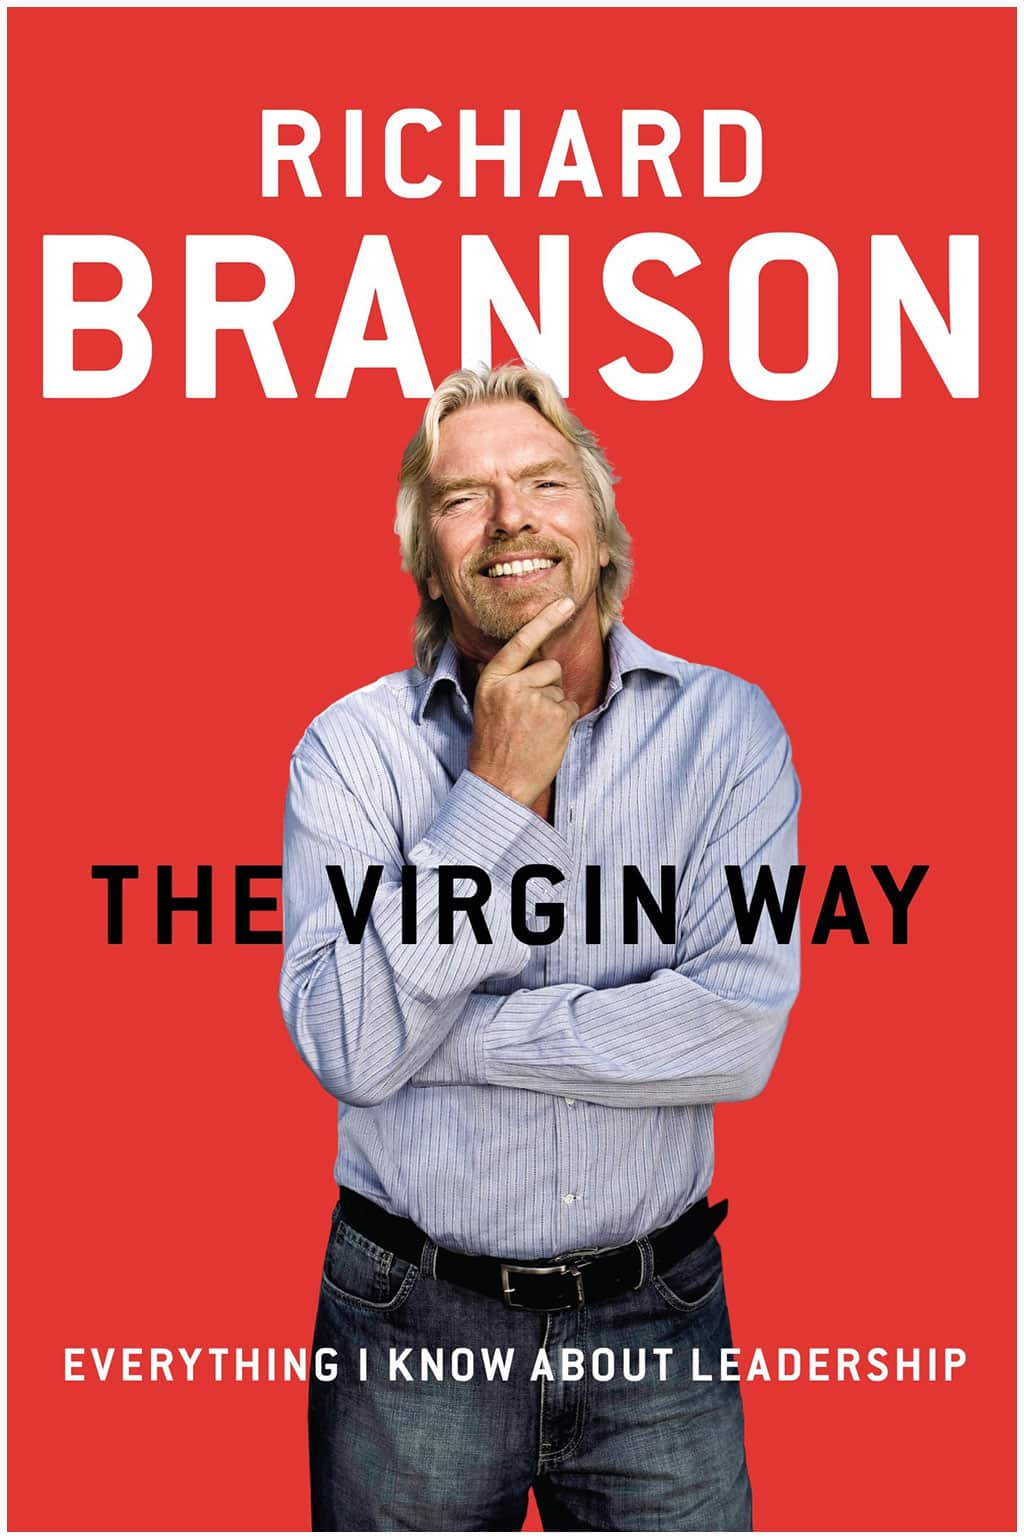 Richard Branson, The Virgin Way: Everything I know about Leadership